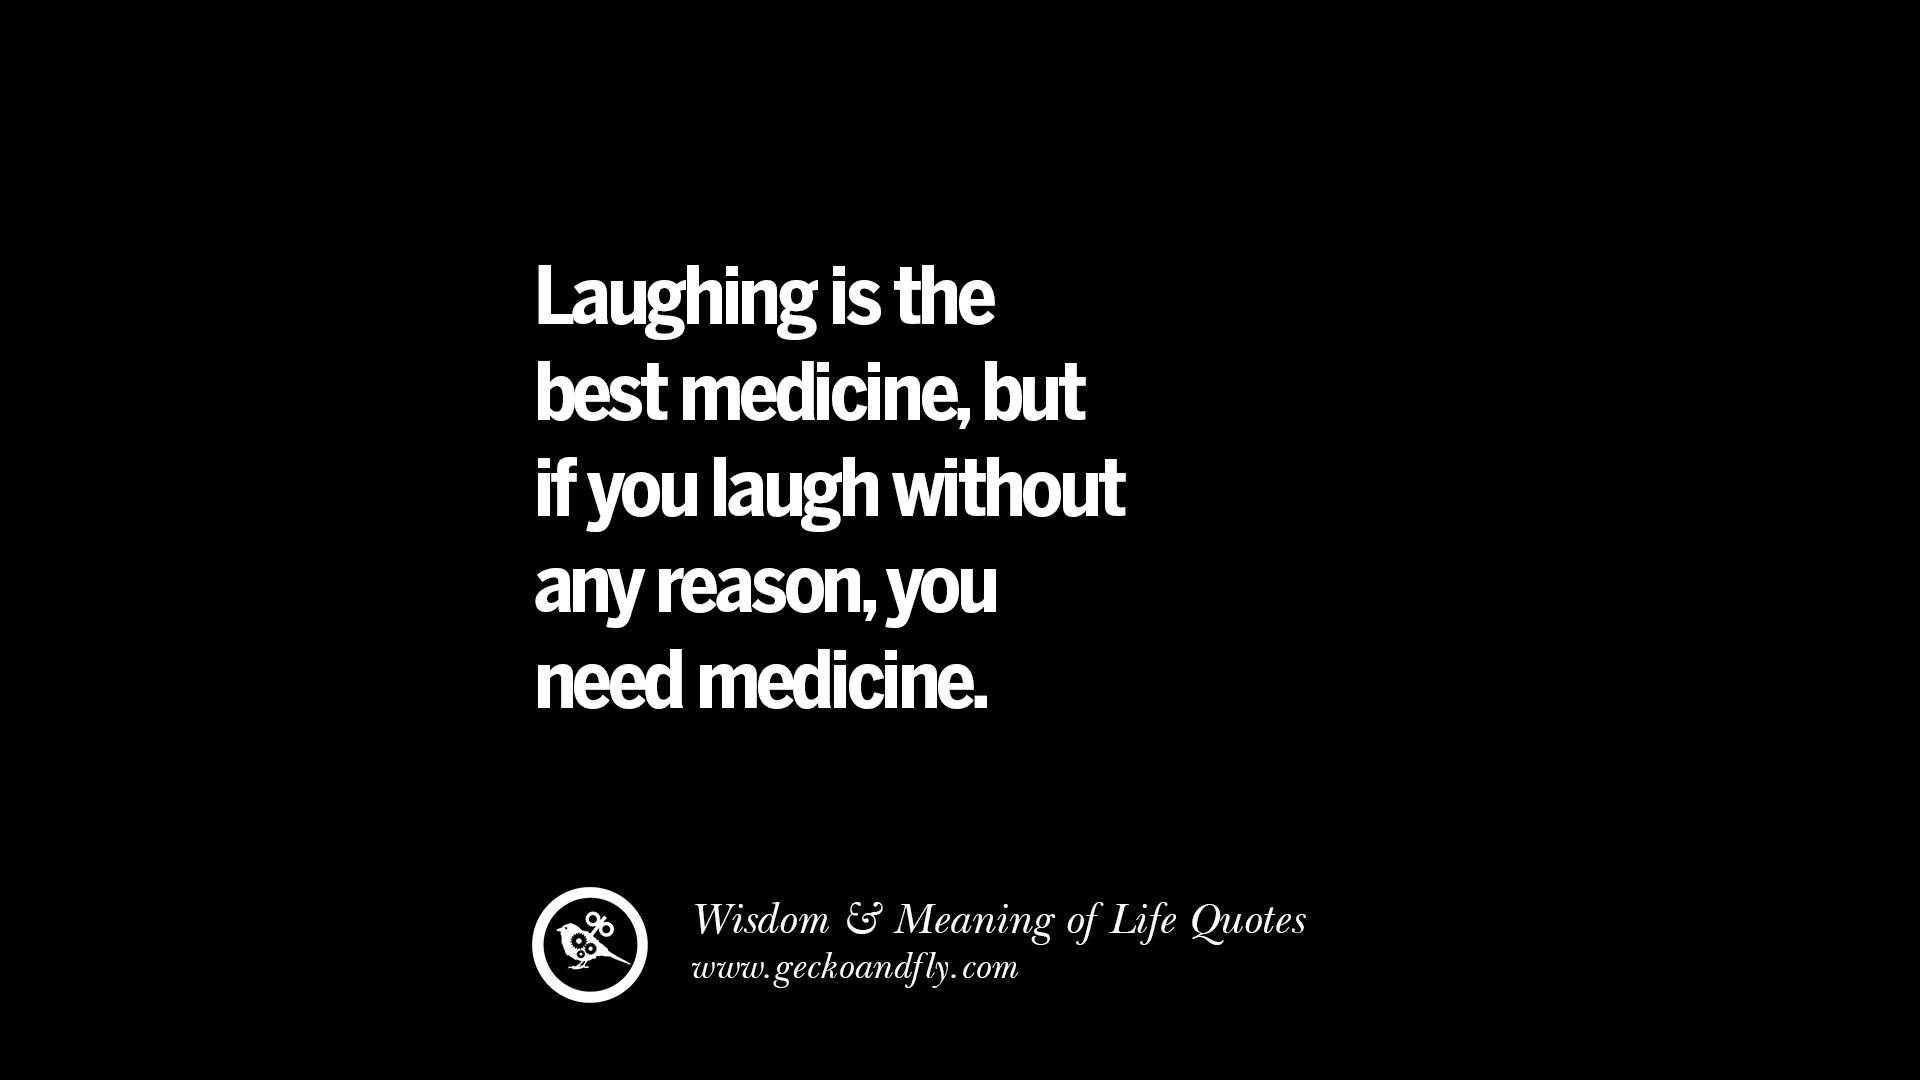 Funny Life Quotes 24 Funny Eye Opening Quotes About Wisdom Truth And Meaning Of